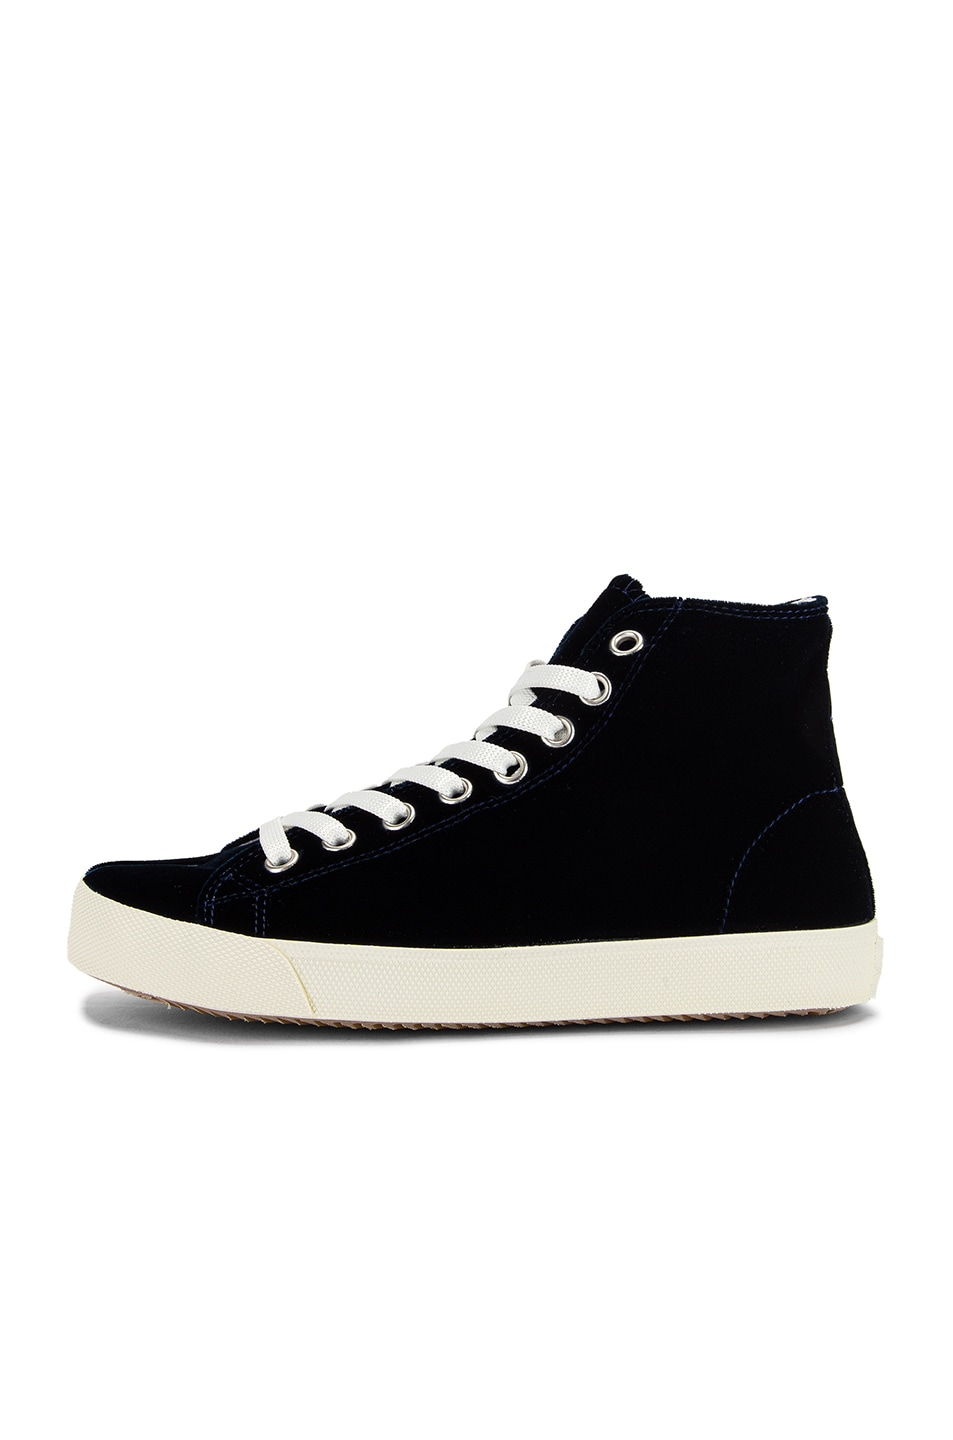 Image 8 of Maison Margiela Toe High Top Sneakers in Navy Blue